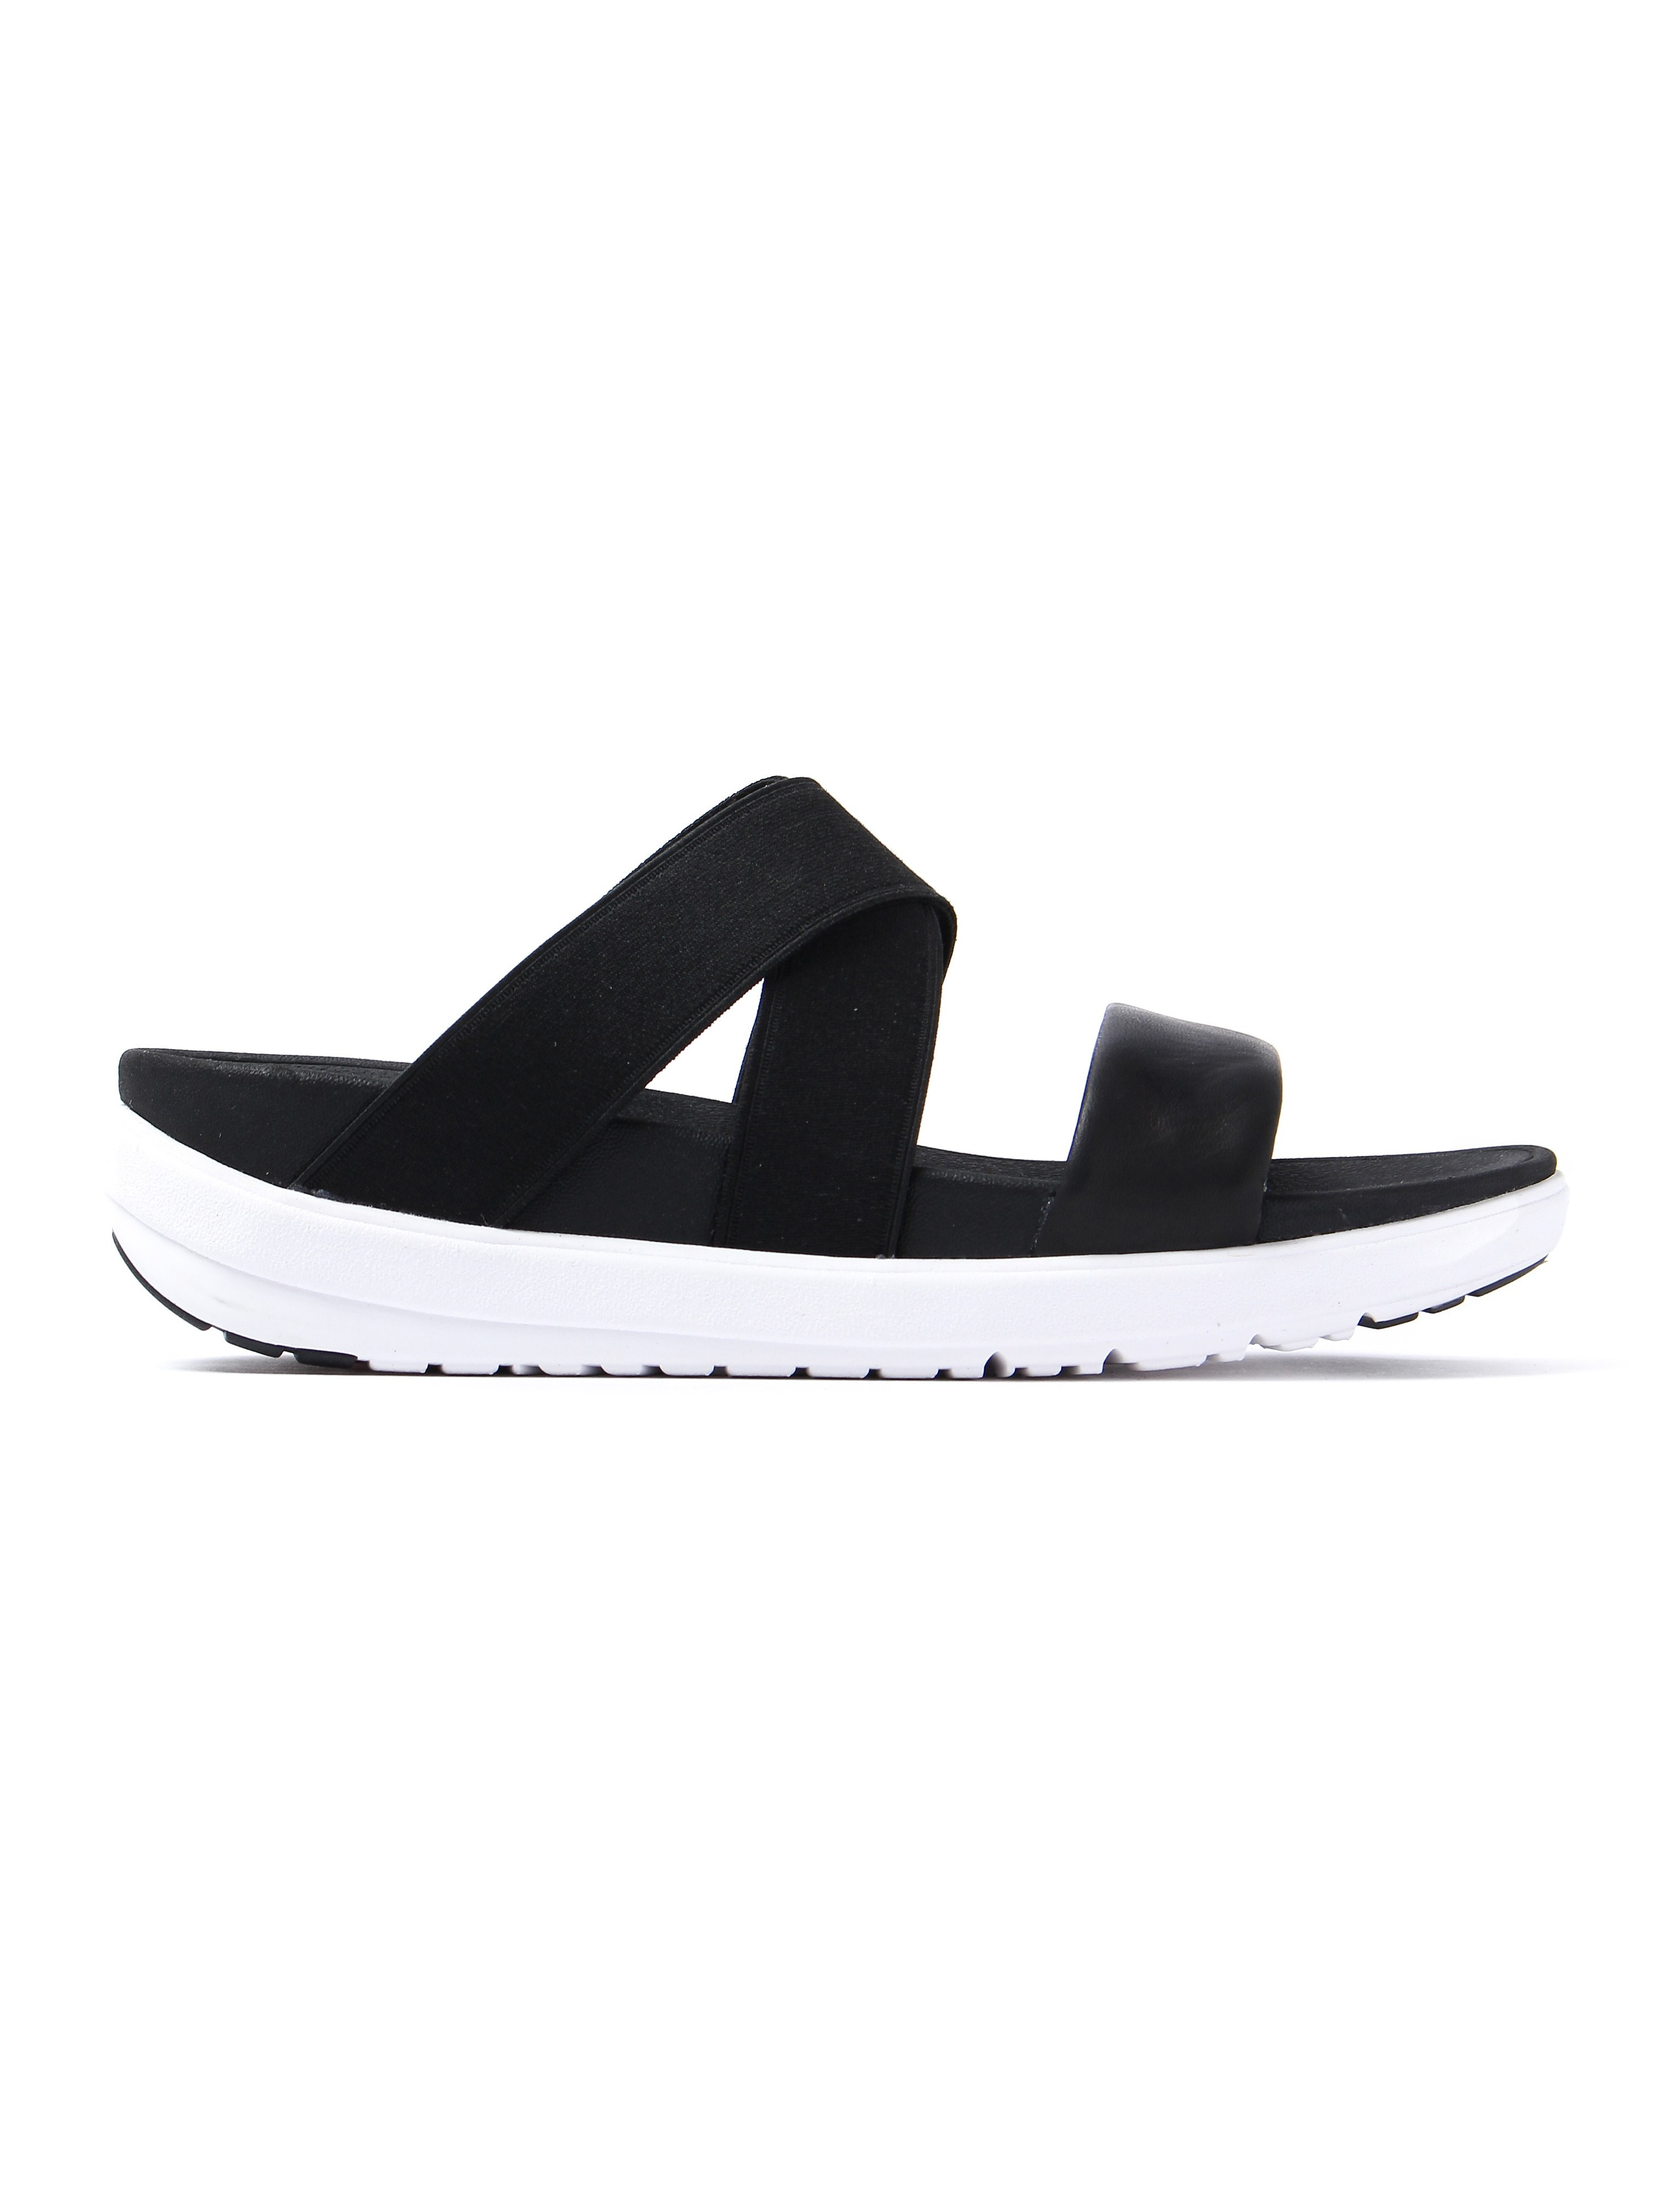 FitFlop Women's Loosh Crossover Sandals - Black